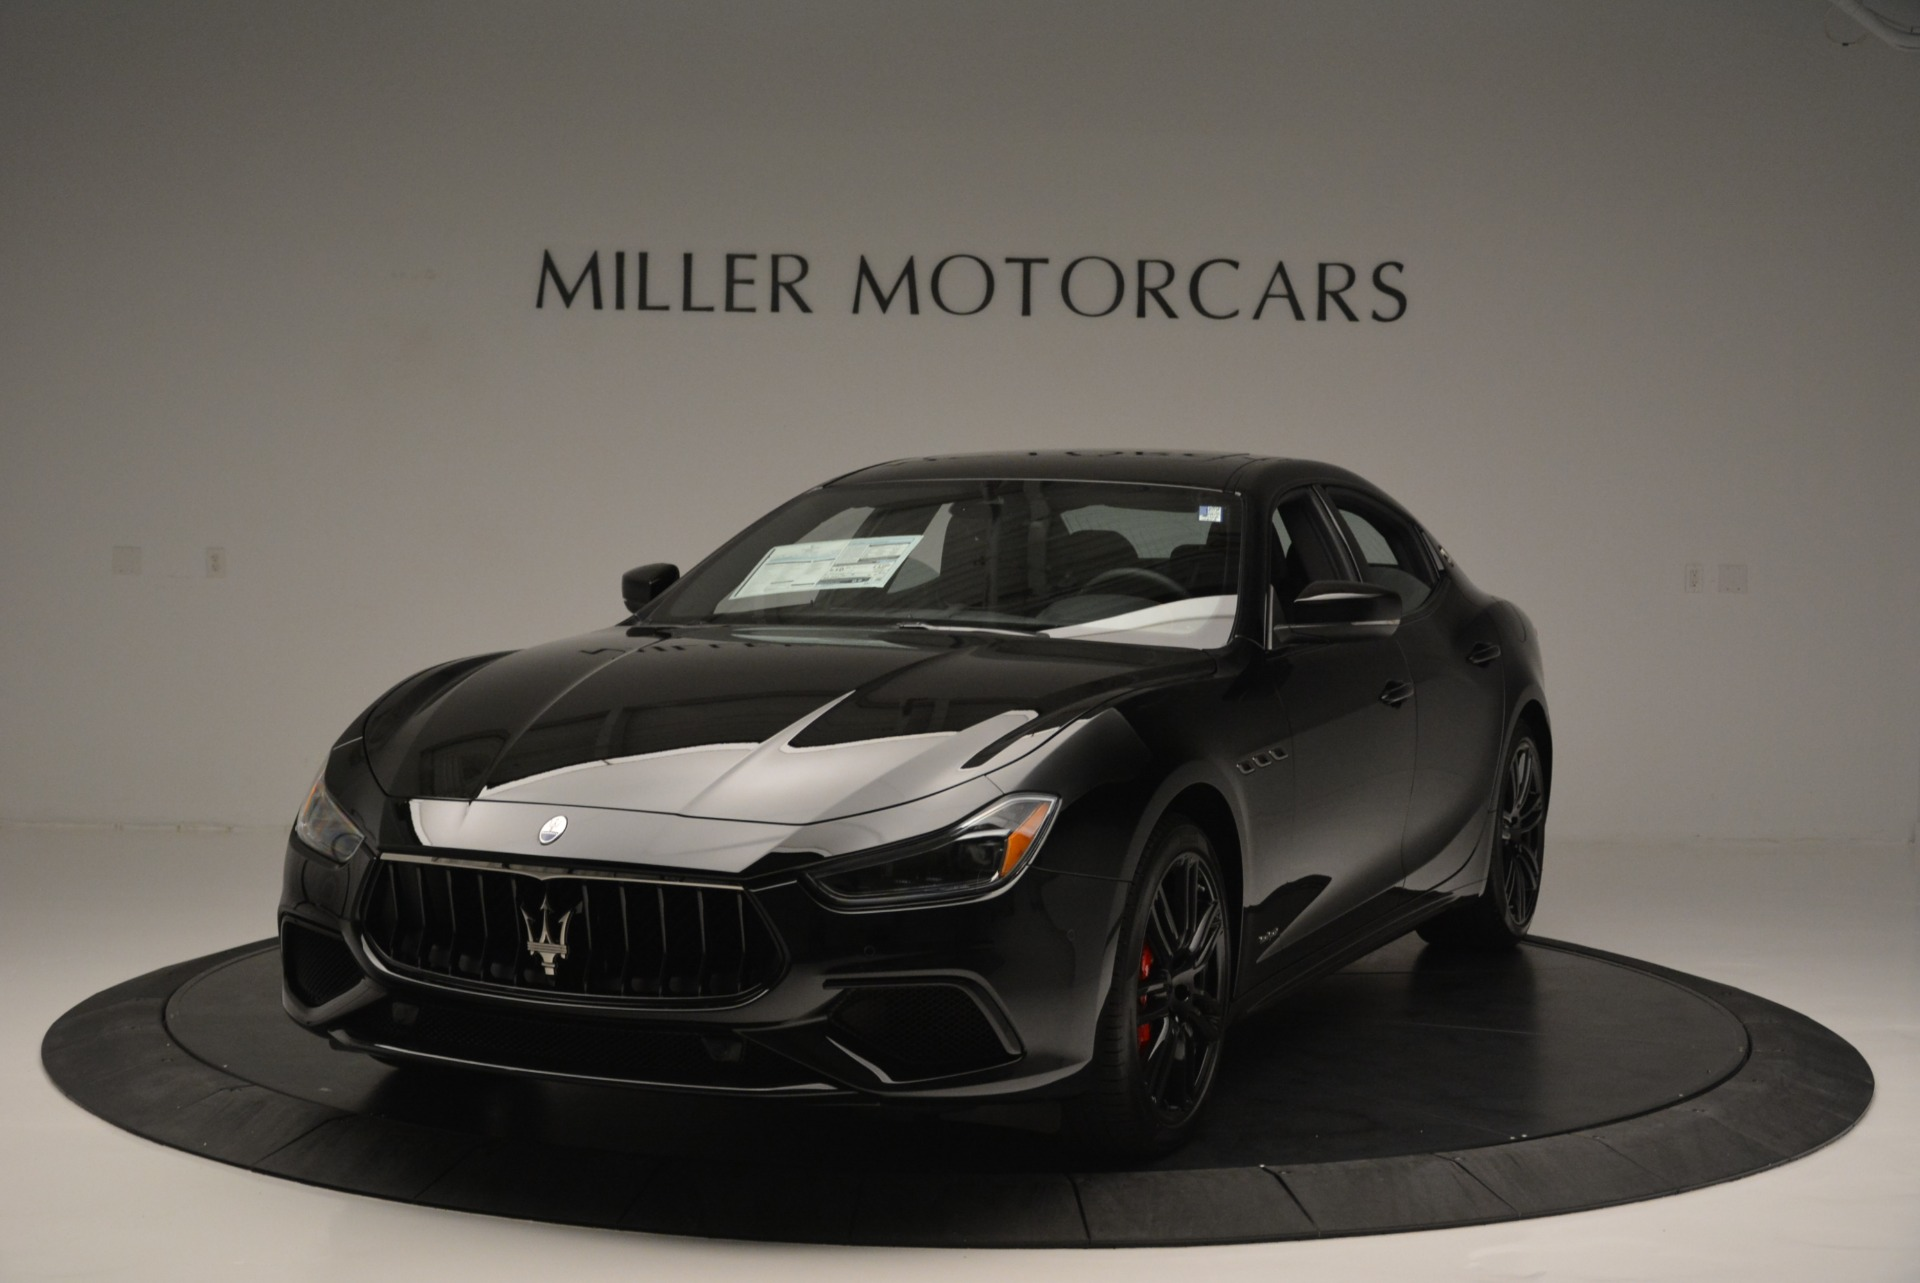 New 2018 Maserati Ghibli SQ4 GranSport Nerissimo for sale Sold at Rolls-Royce Motor Cars Greenwich in Greenwich CT 06830 1